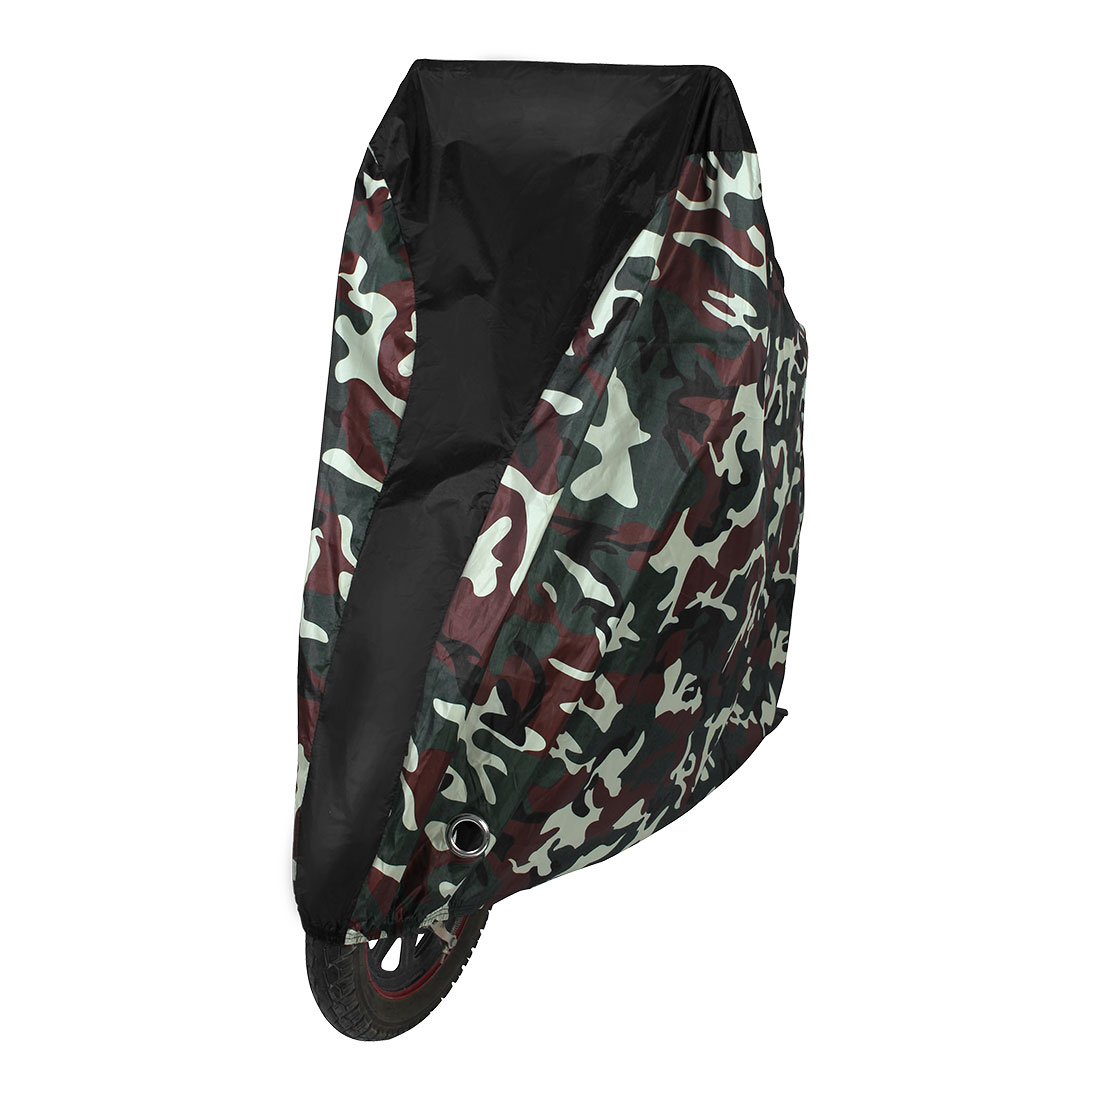 Outdoor Bicycle Bike Cover Rain Protector Anti-UV Garage Storage XL Camouflage